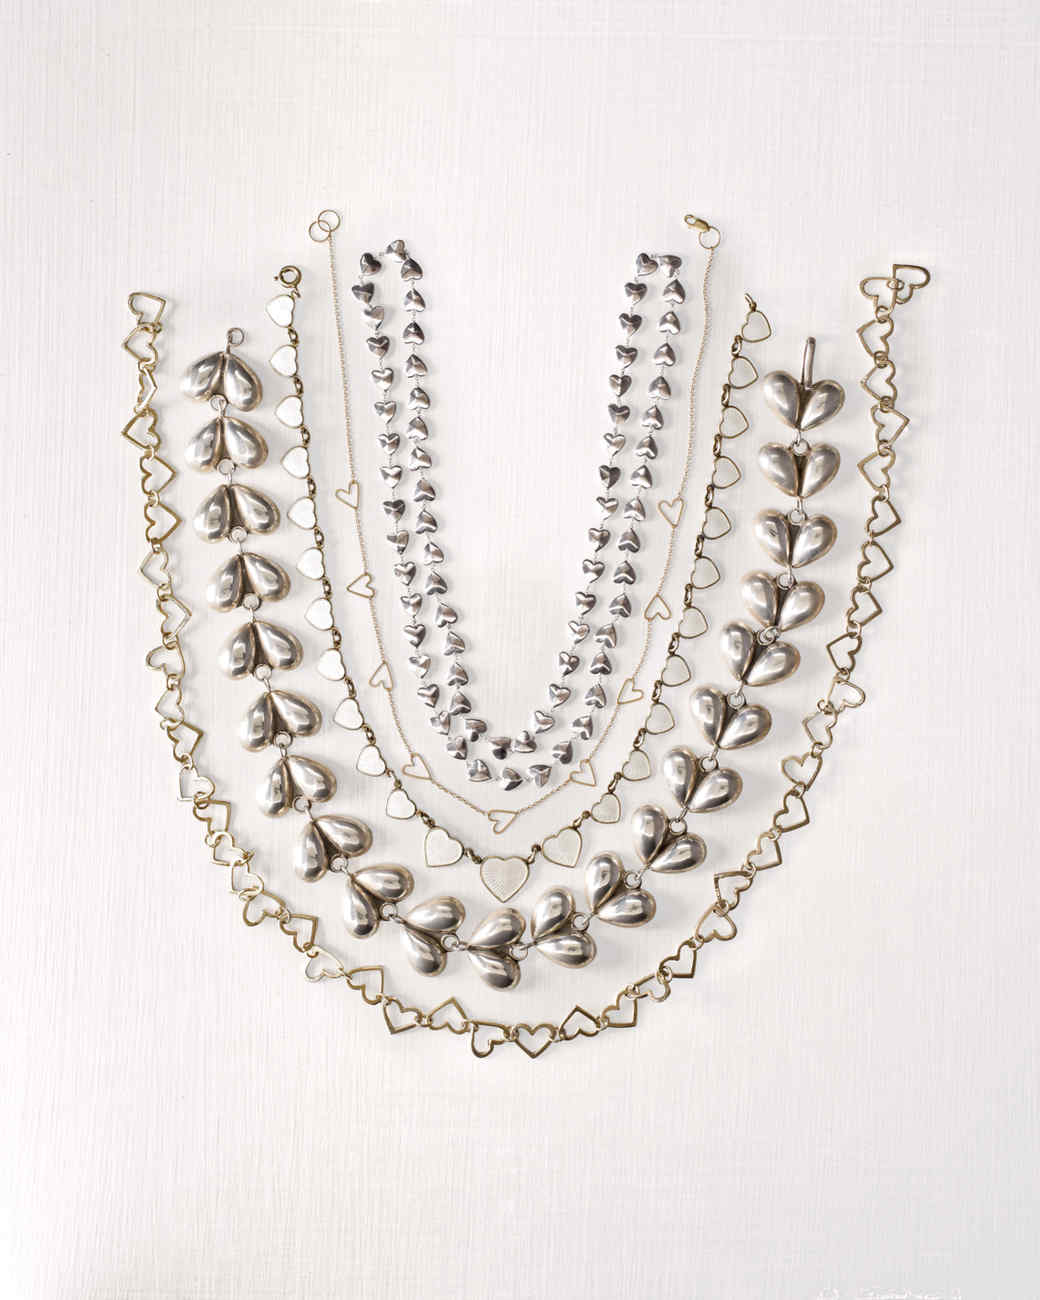 heart-necklaces-mld108078.jpg